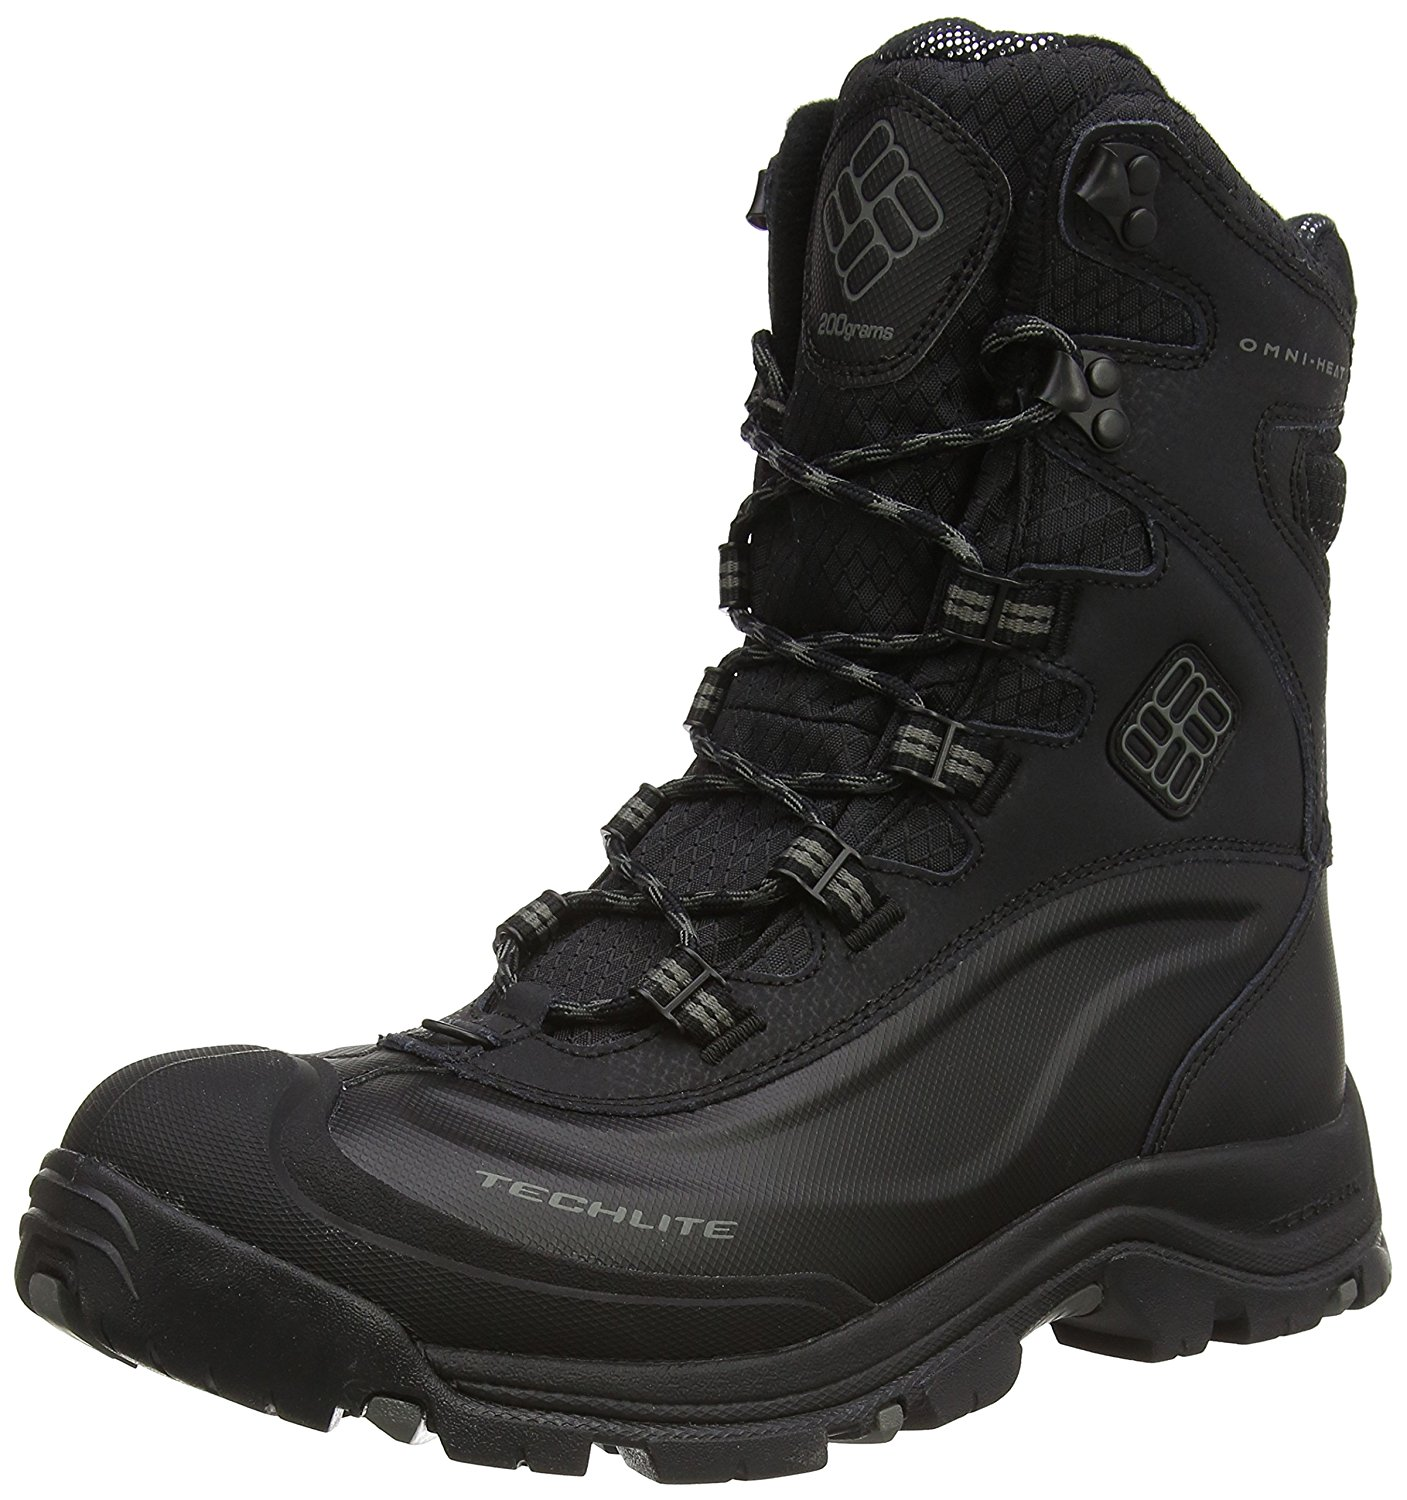 Columbia men's Bugaboot PLUS III OMNI cold-weather boots